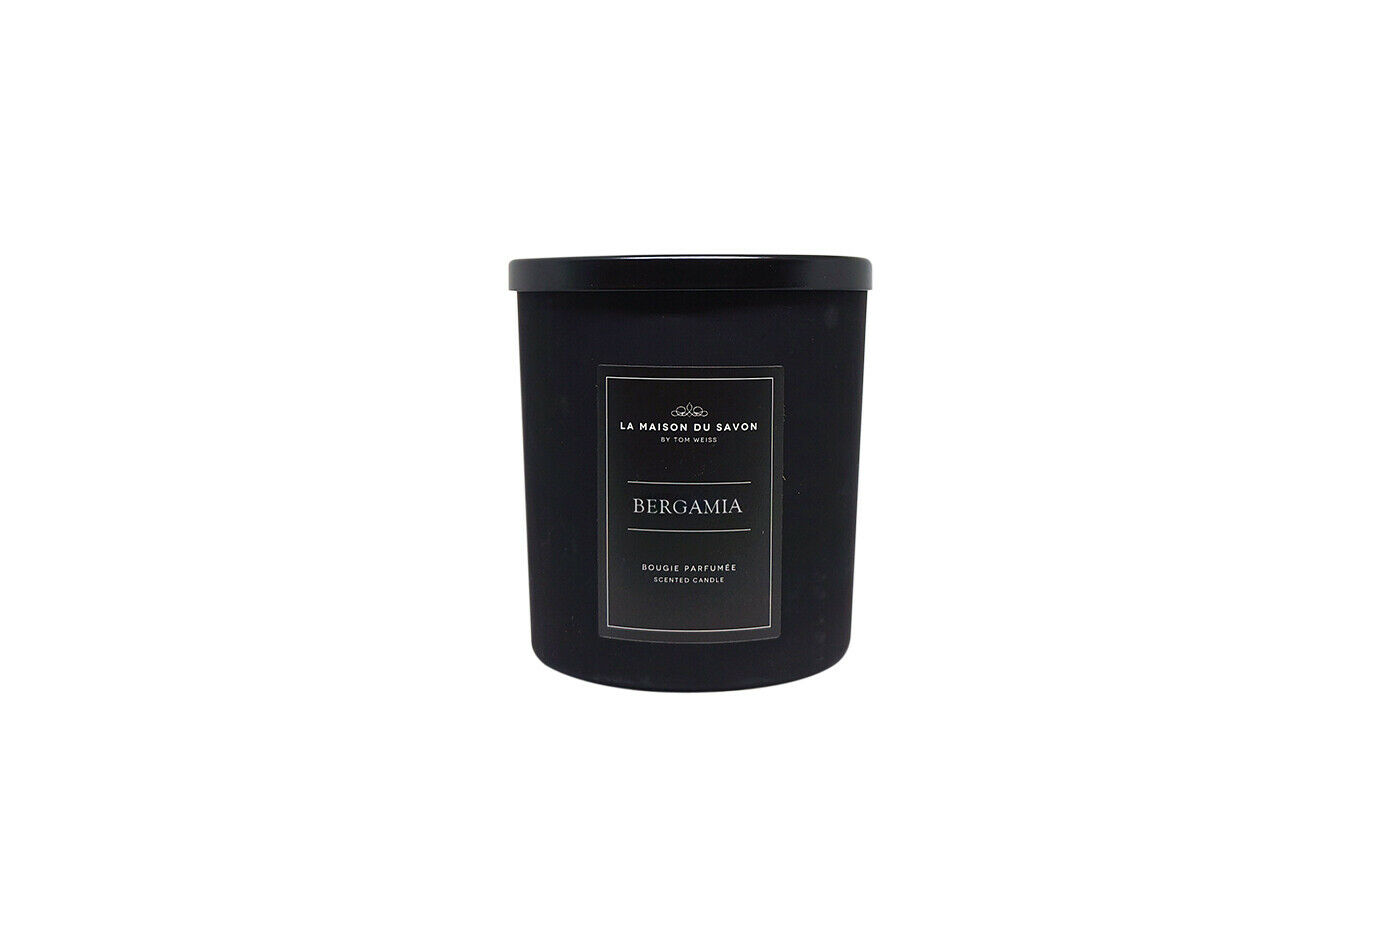 Bergamia Scented Candle natural wax 400g